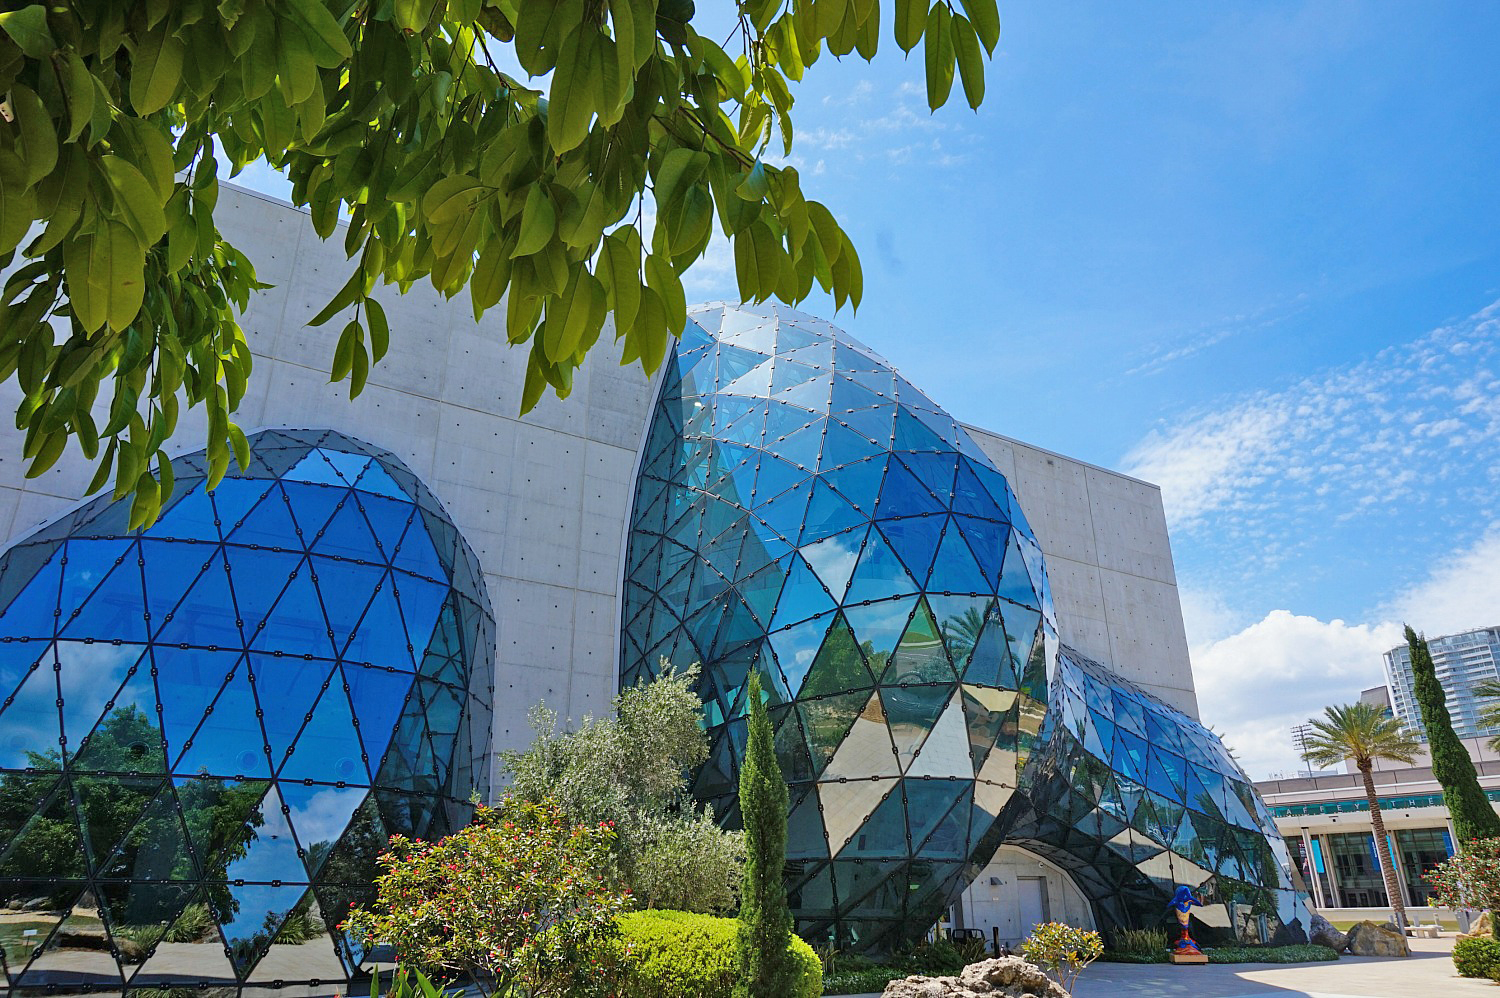 Reasons to visit America - Dali Museum St. Petersburg. Florida.